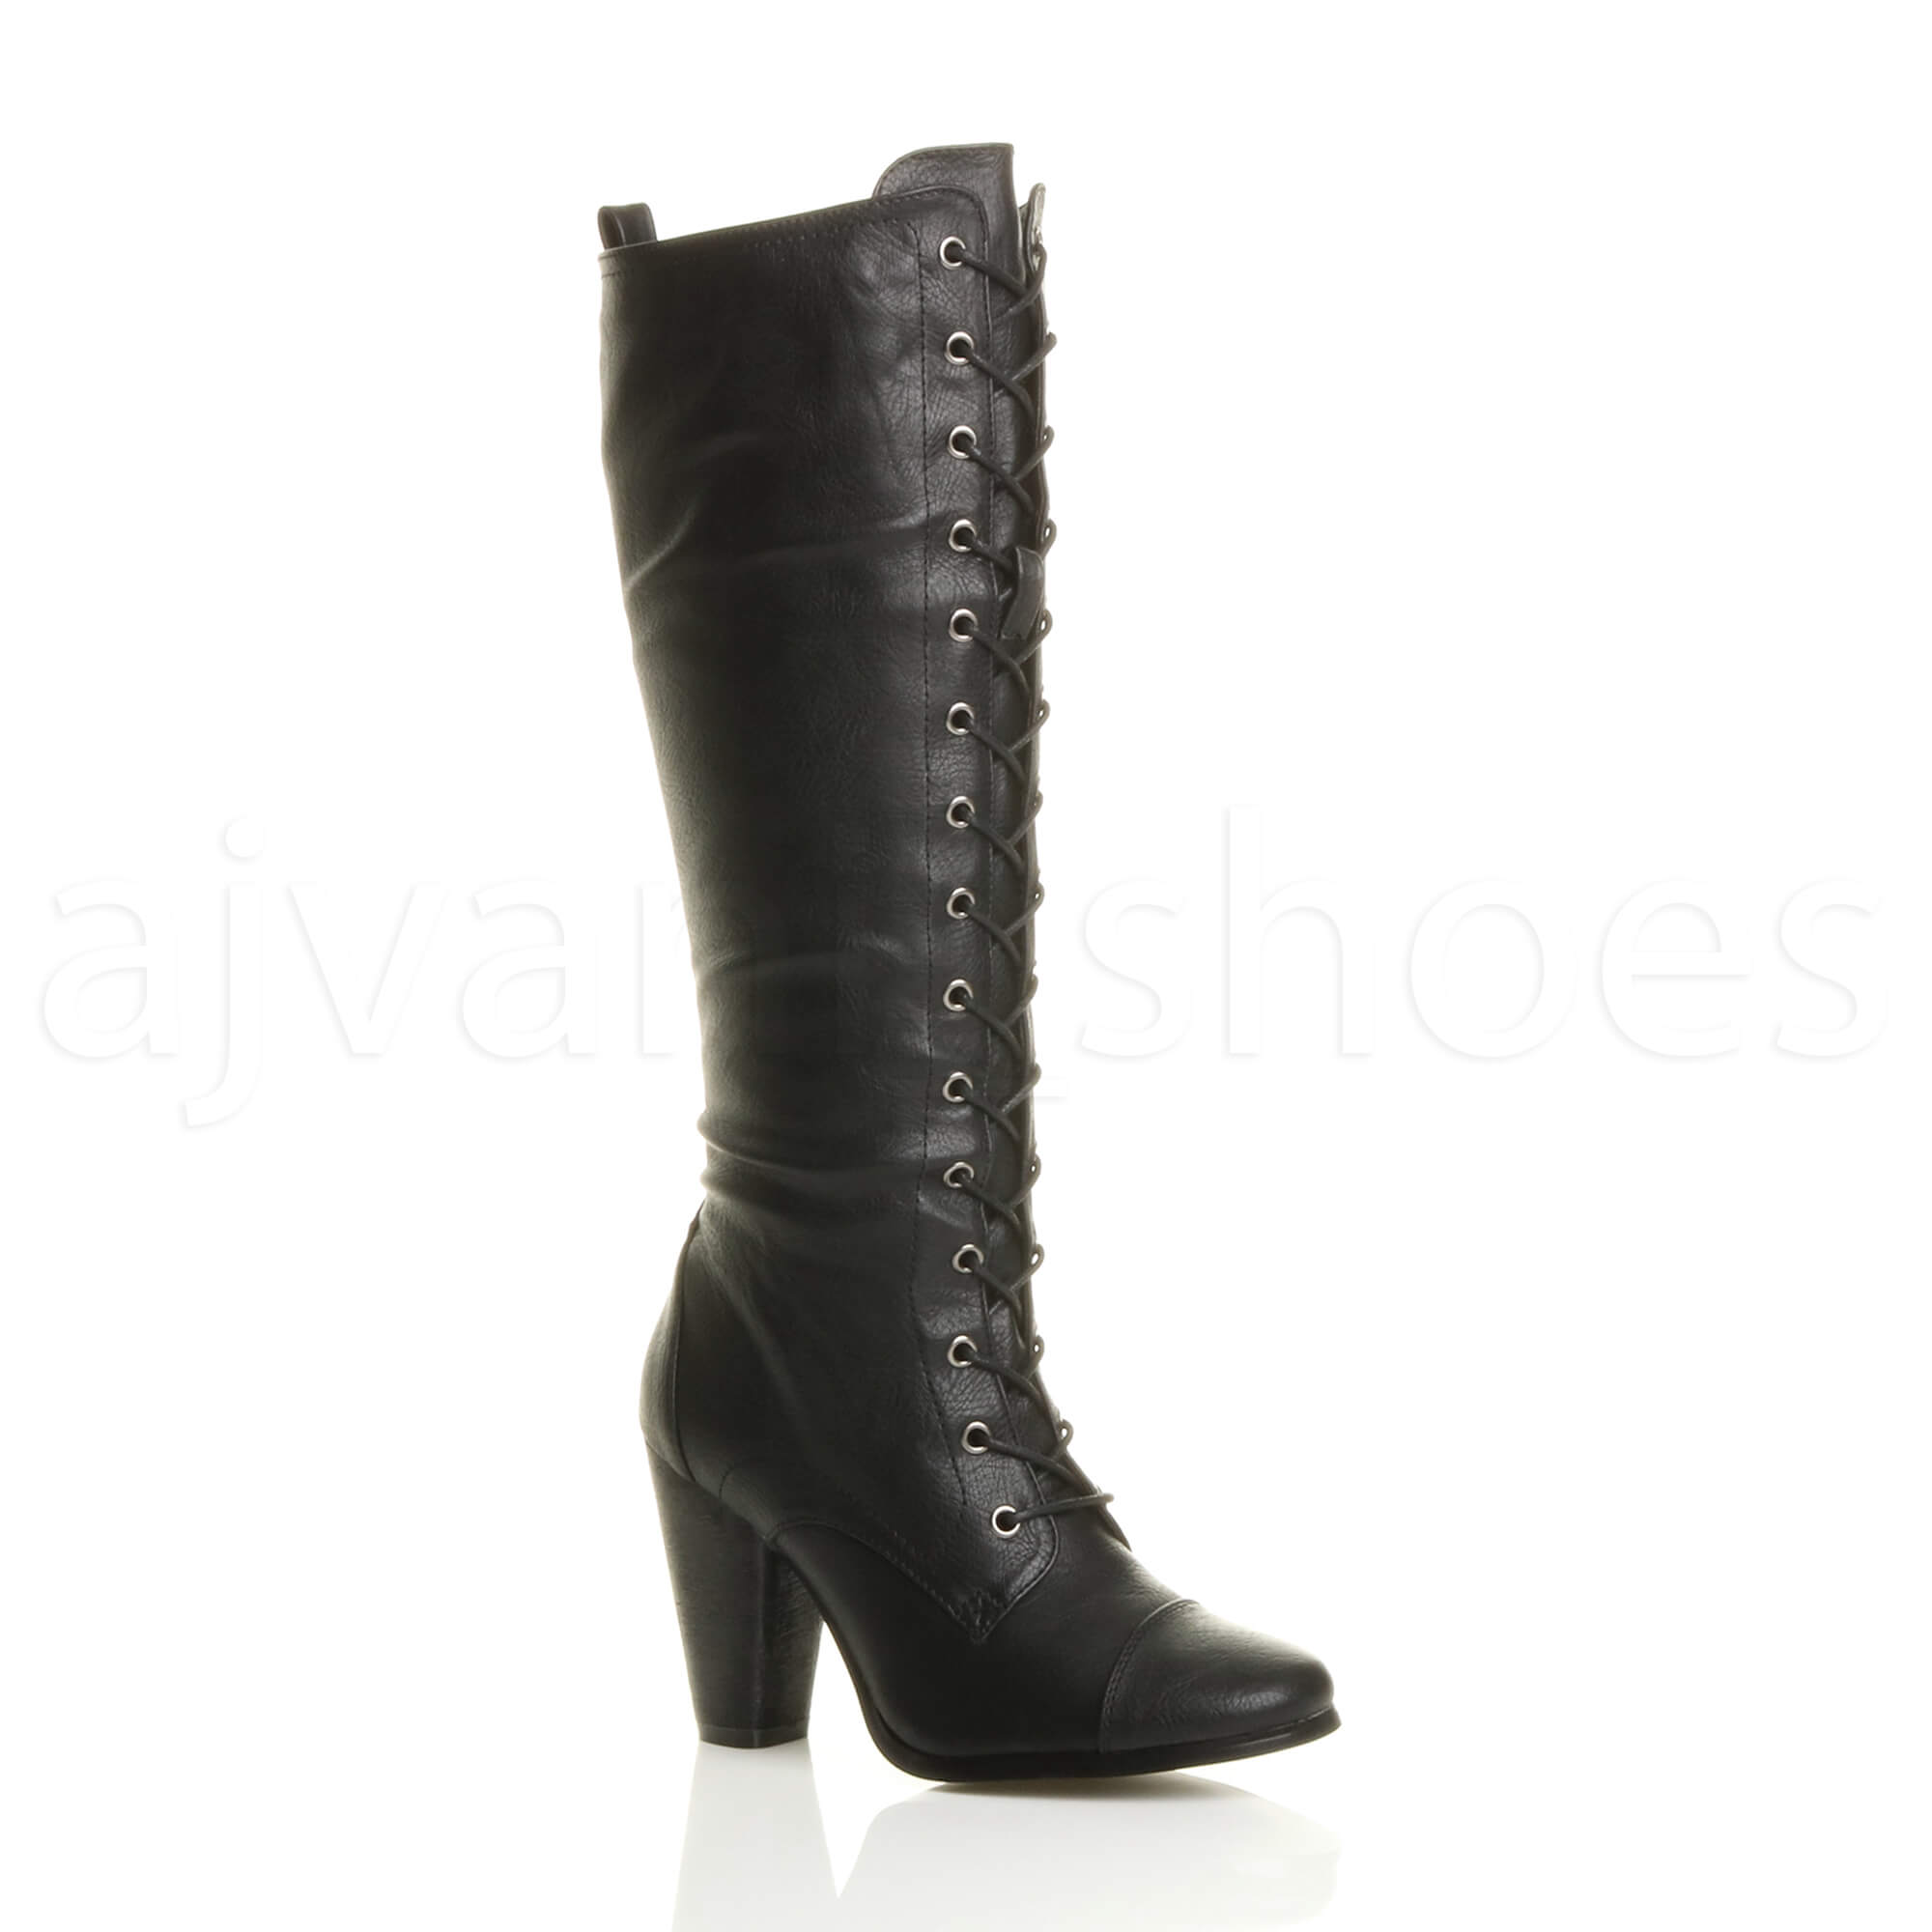 WOMENS-LADIES-HIGH-CHUNKY-HEEL-LACE-UP-CALF-KNEE-MILITARY-BIKER-BOOTS-SIZE